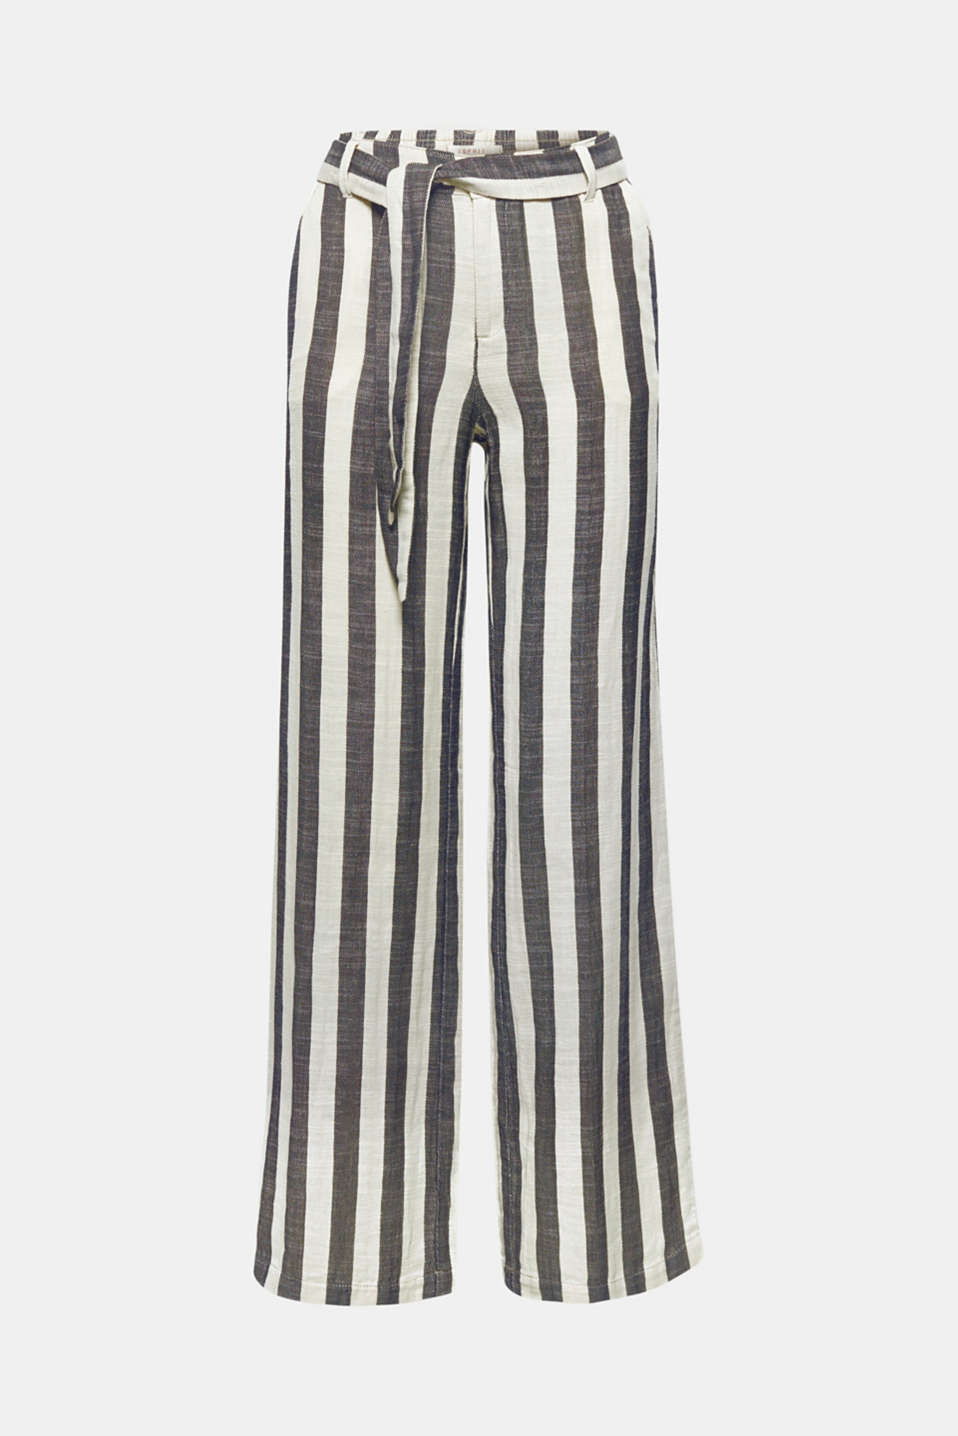 These trousers are very modern and wonderfully lightweight with block stripes, straight leg and a tie belt!